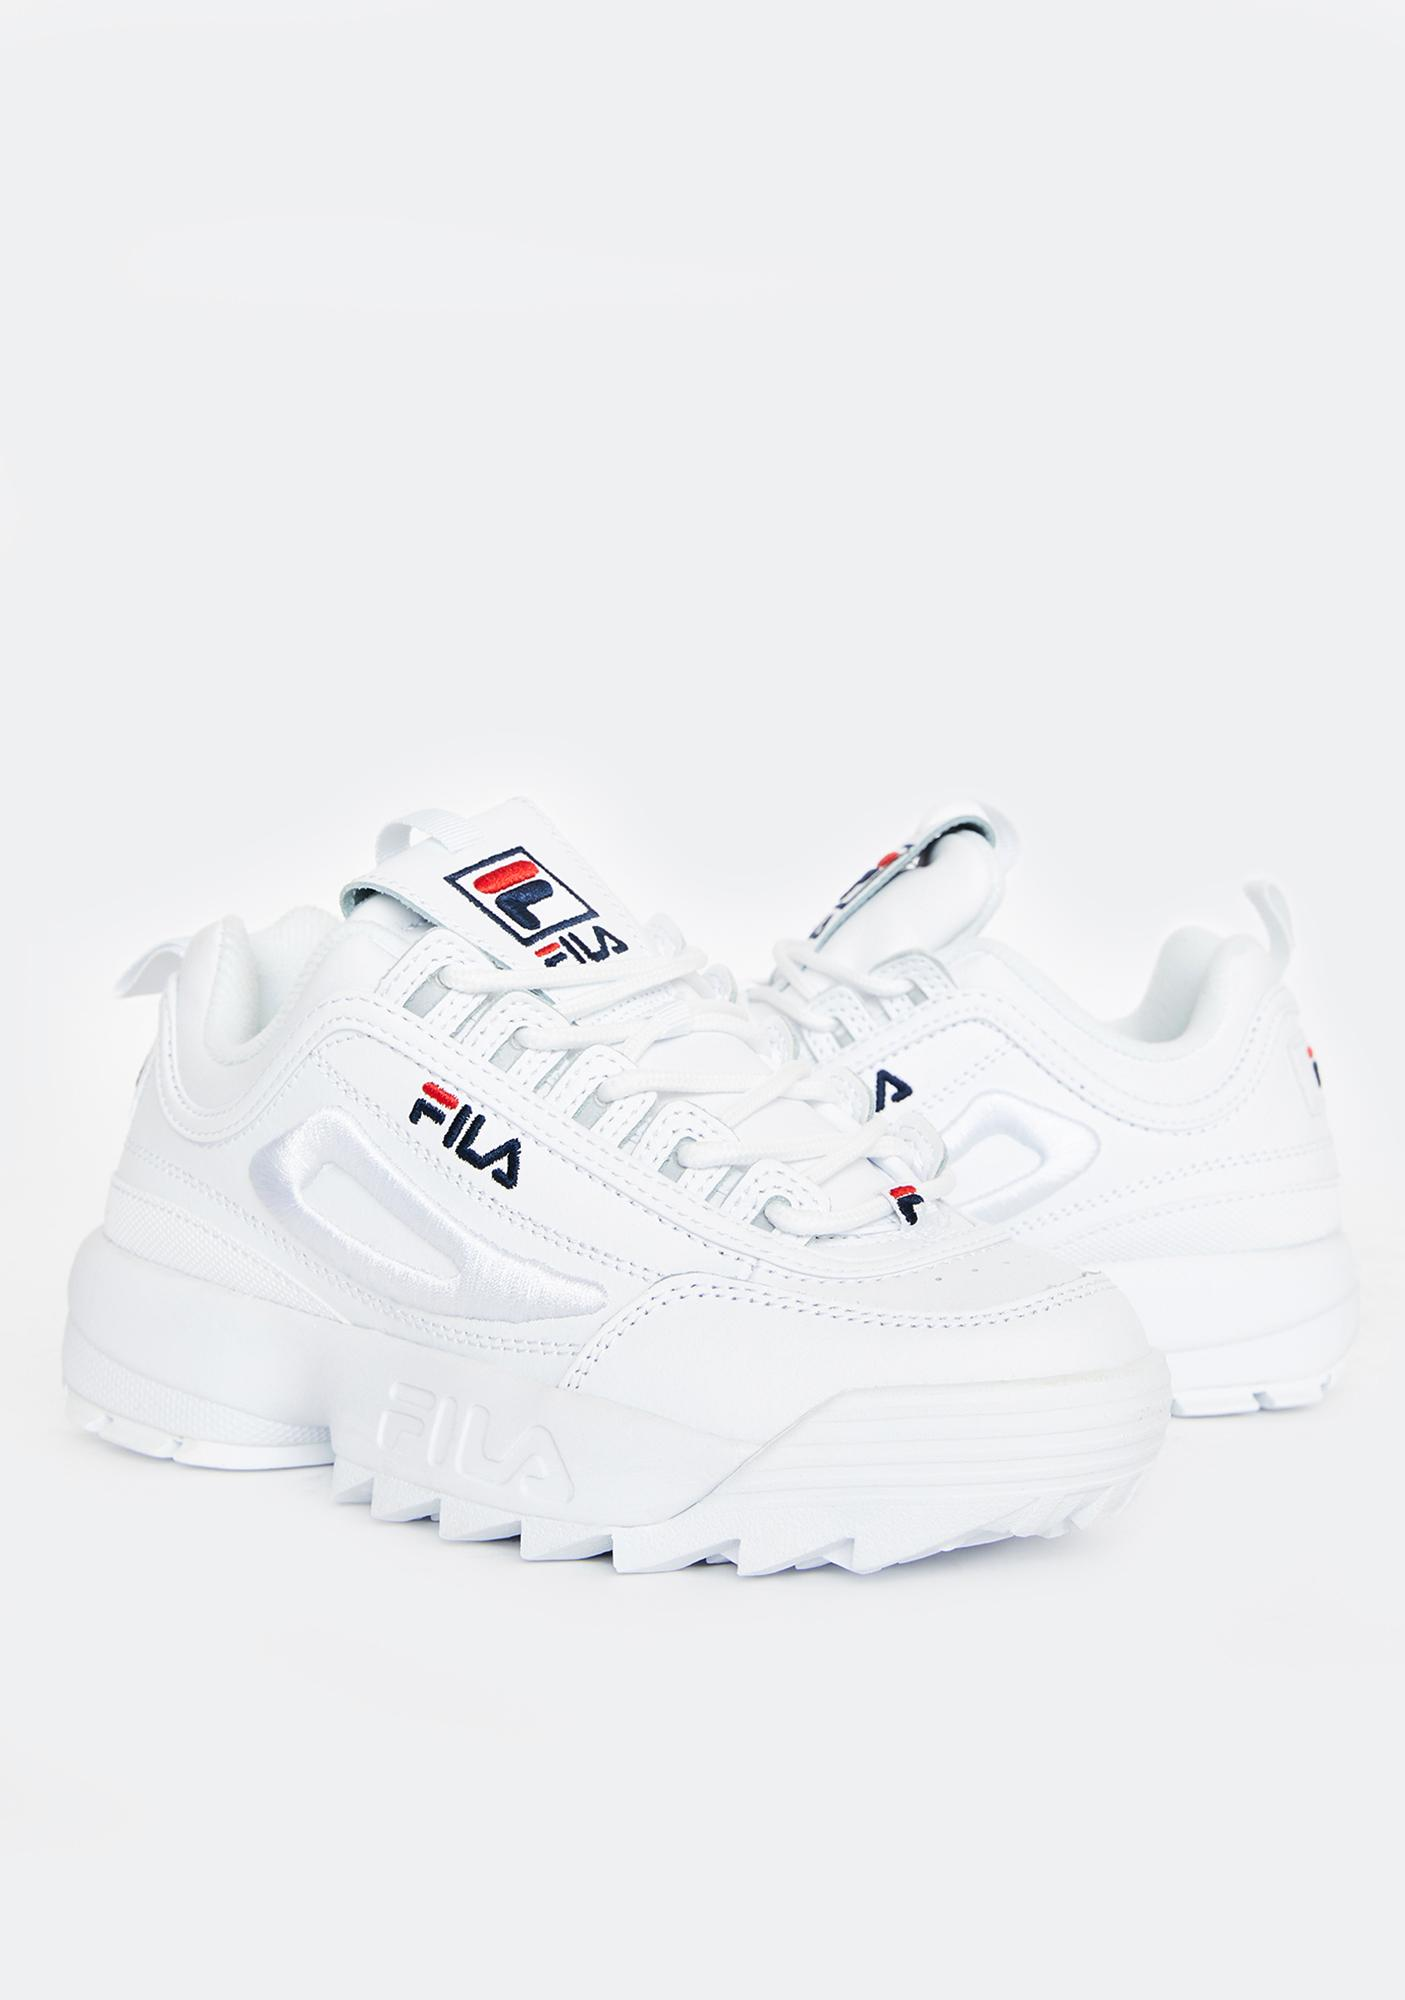 Fila Disruptor 2 3D Embroidered Sneakers